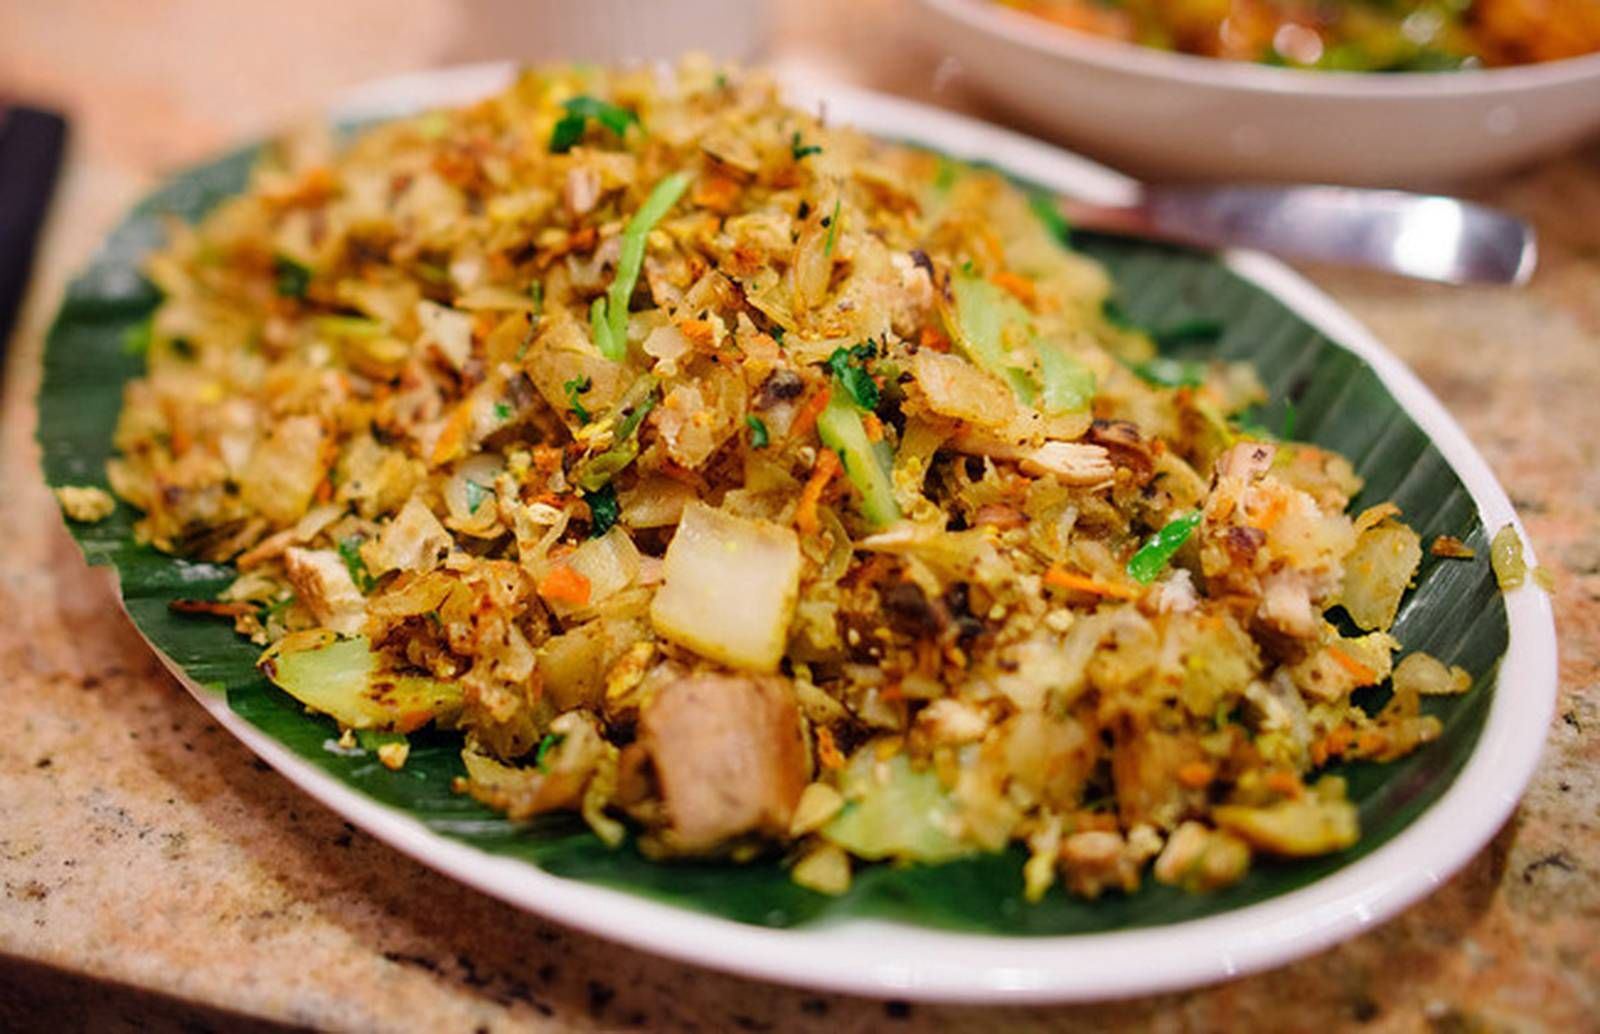 Best Street Food in Sri Lanka To Have An Amazing Gastronomic Experience-Kottu Roti